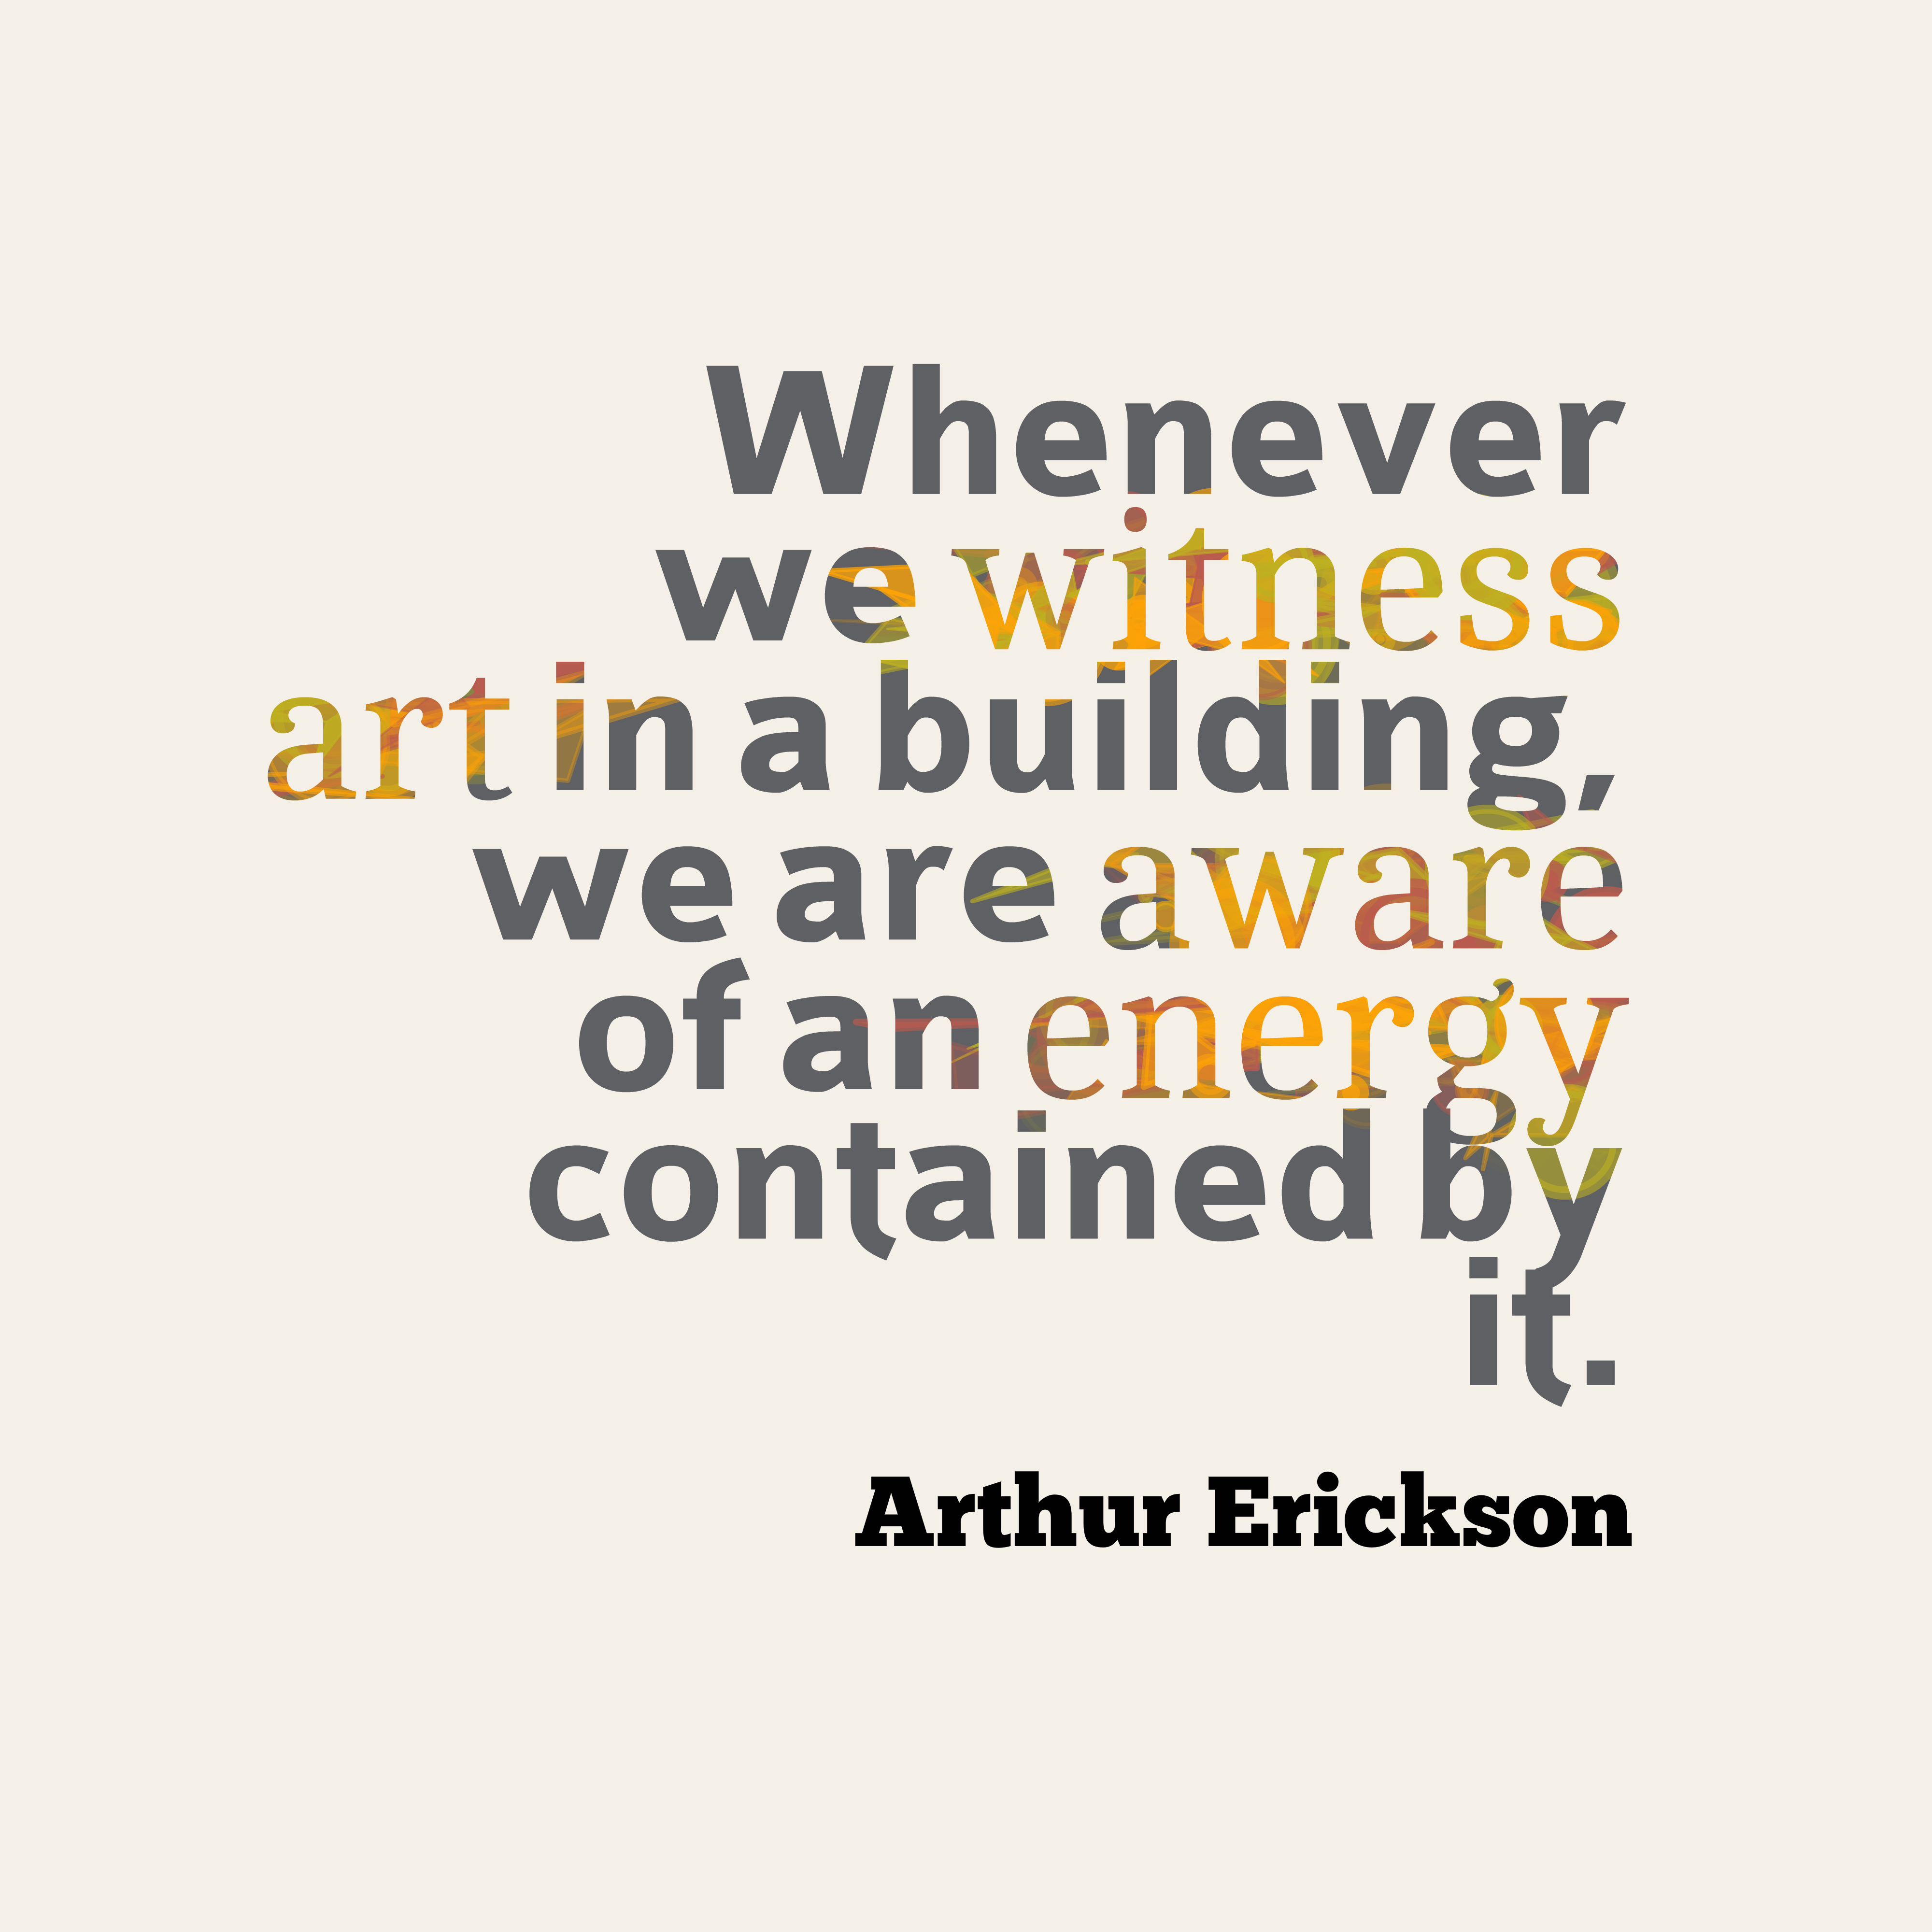 Quotes image of Whenever we witness art in a building, we are aware of an energy contained by it.